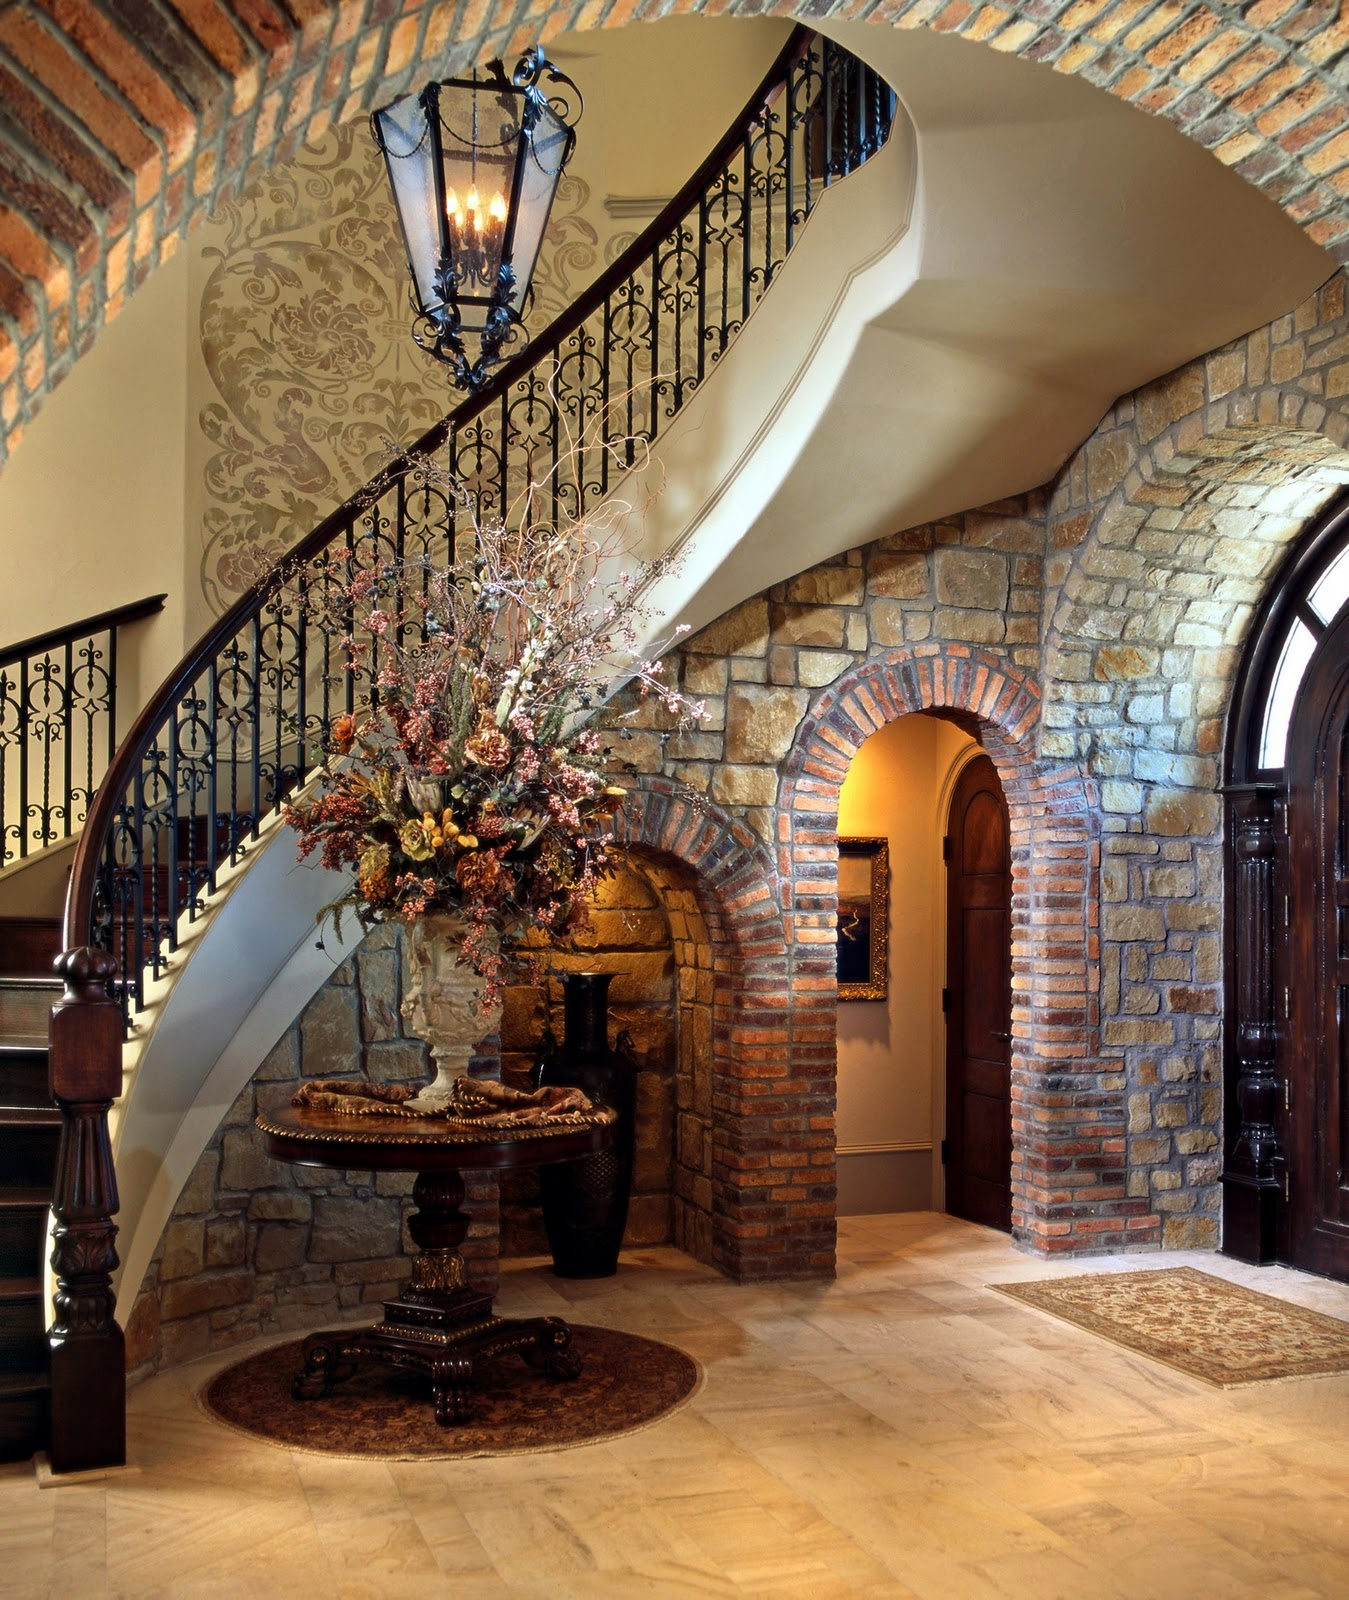 Interior Home Decoration Indoor Stairs Design Pictures: Lomonaco's Iron Concepts & Home Decor: Tuscan Curved Stairway